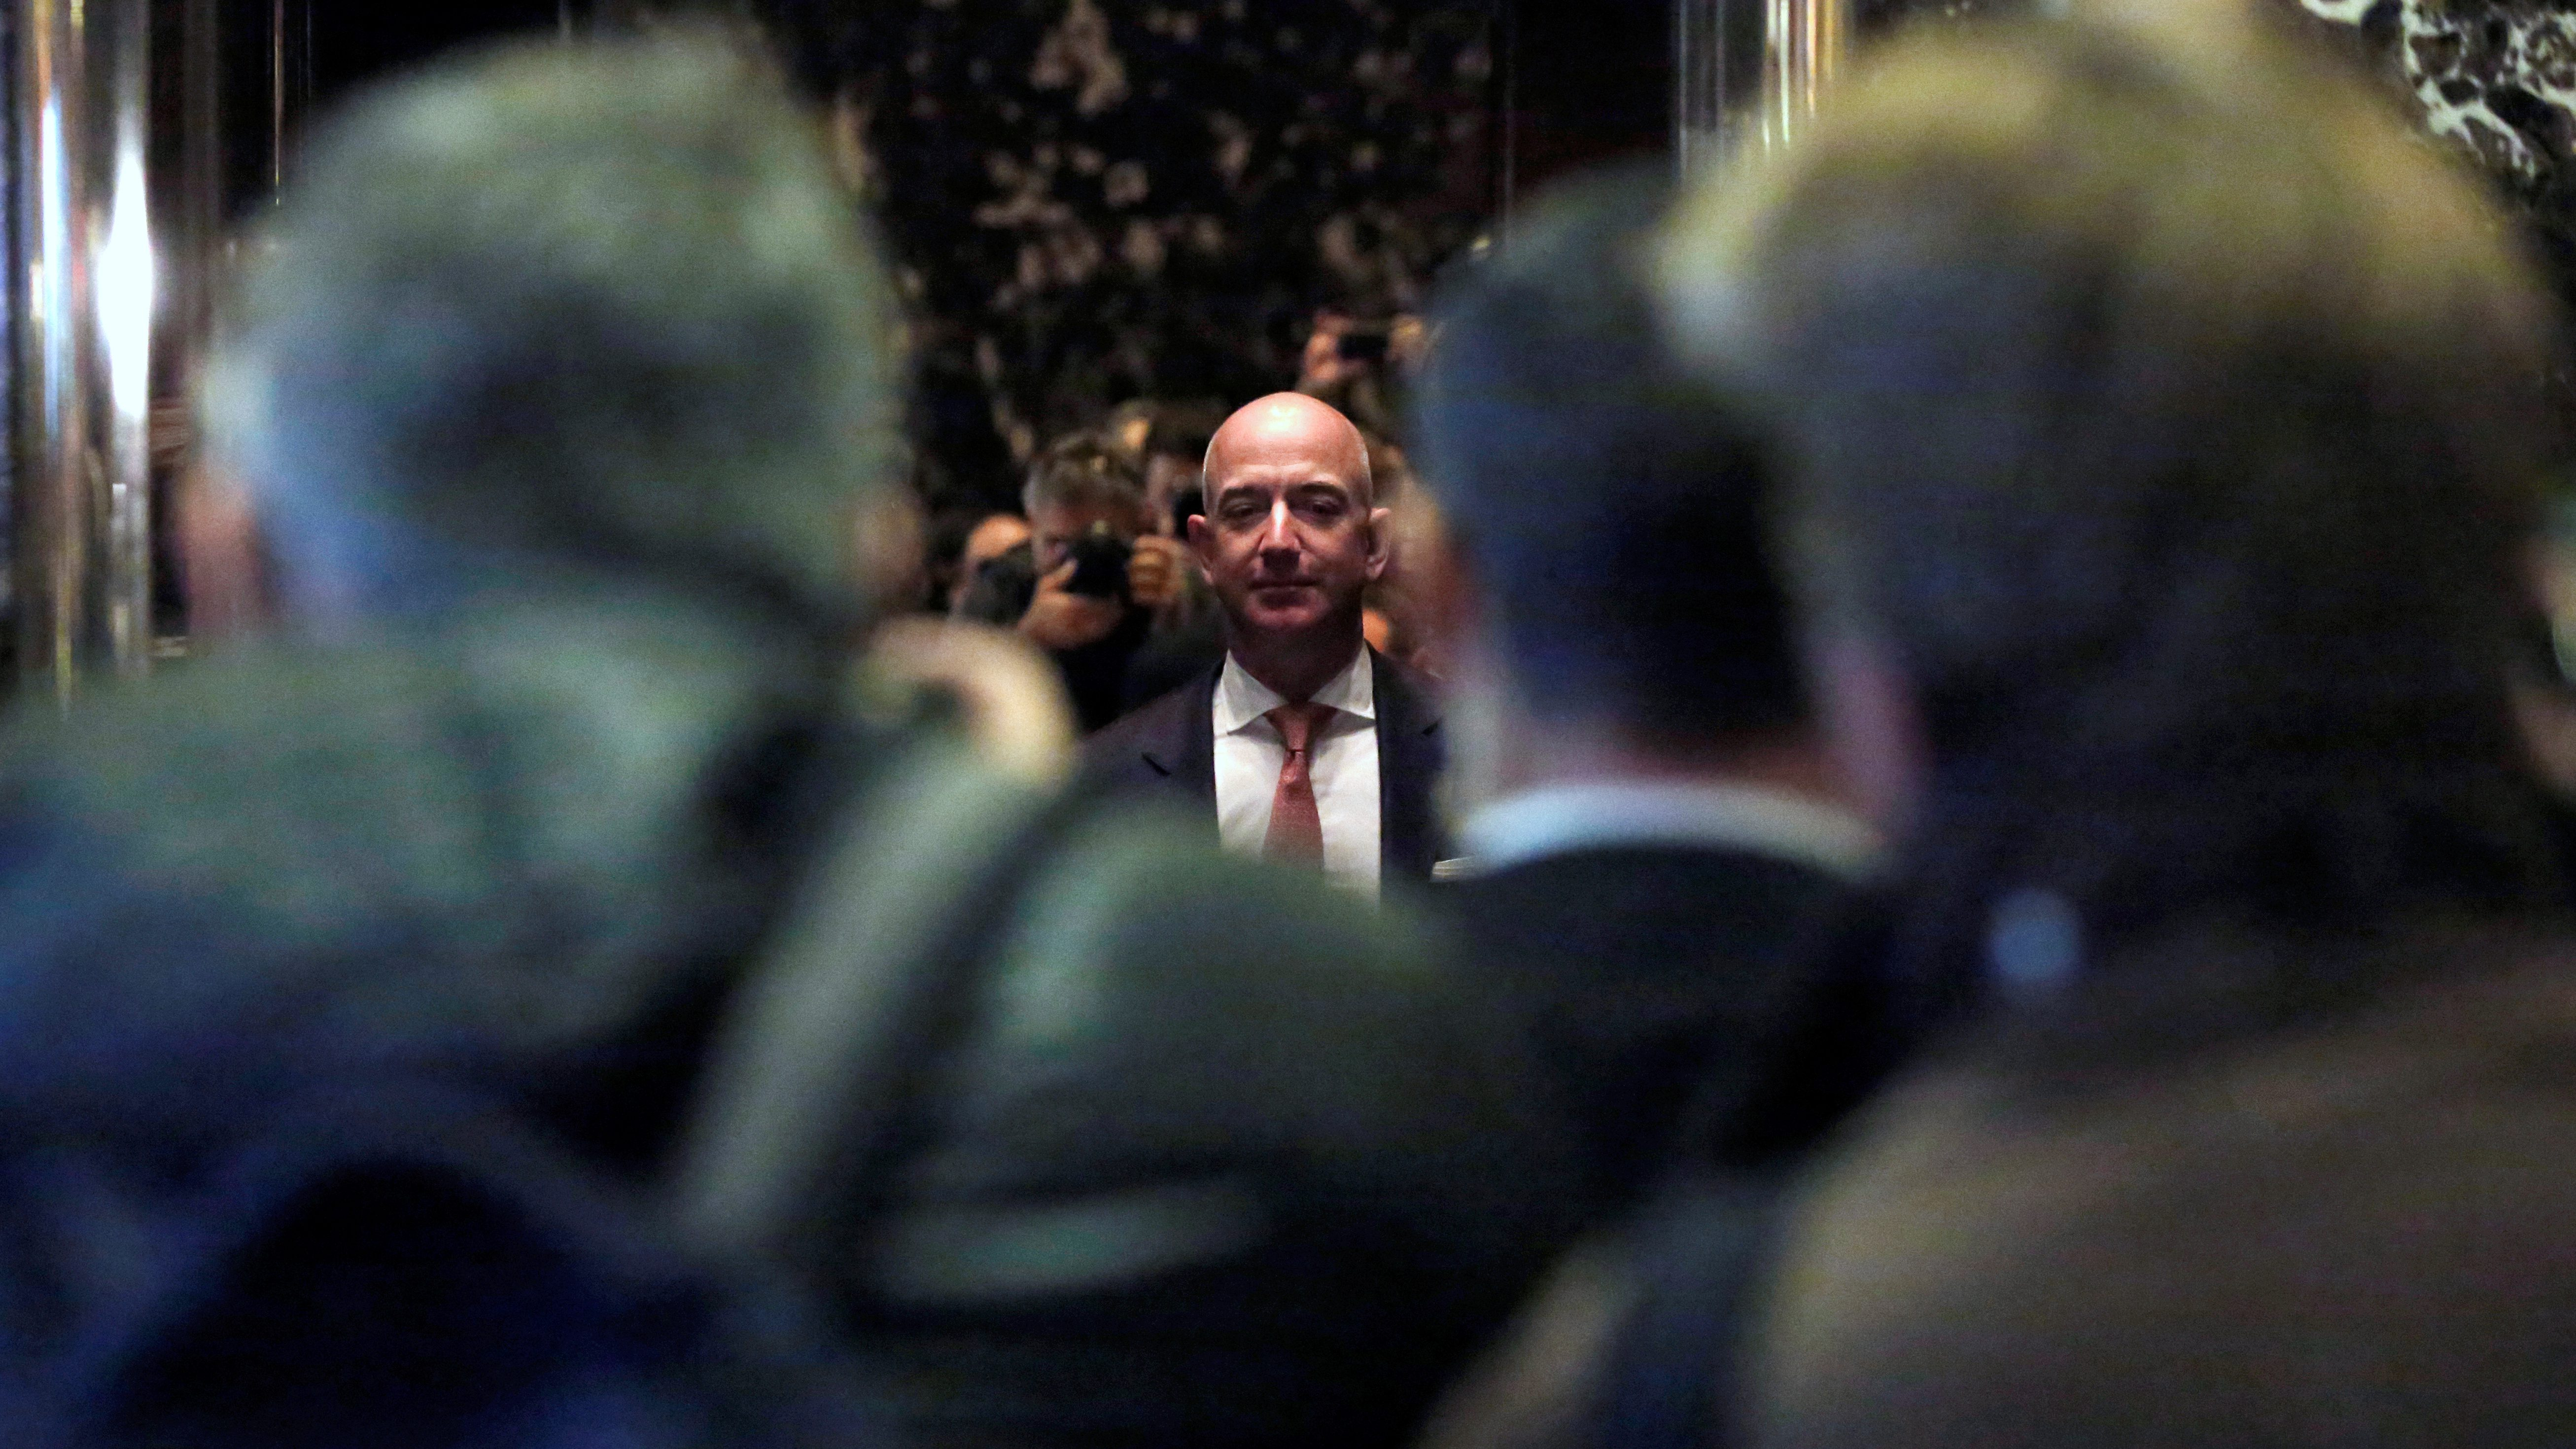 Jeff Bezos, founder, chairman, and chief executive officer of Amazon.com is photographed by media as he enters Trump Tower ahead of a meeting of technology leaders with President-elect Donald Trump in Manhattan, New York City, U.S.